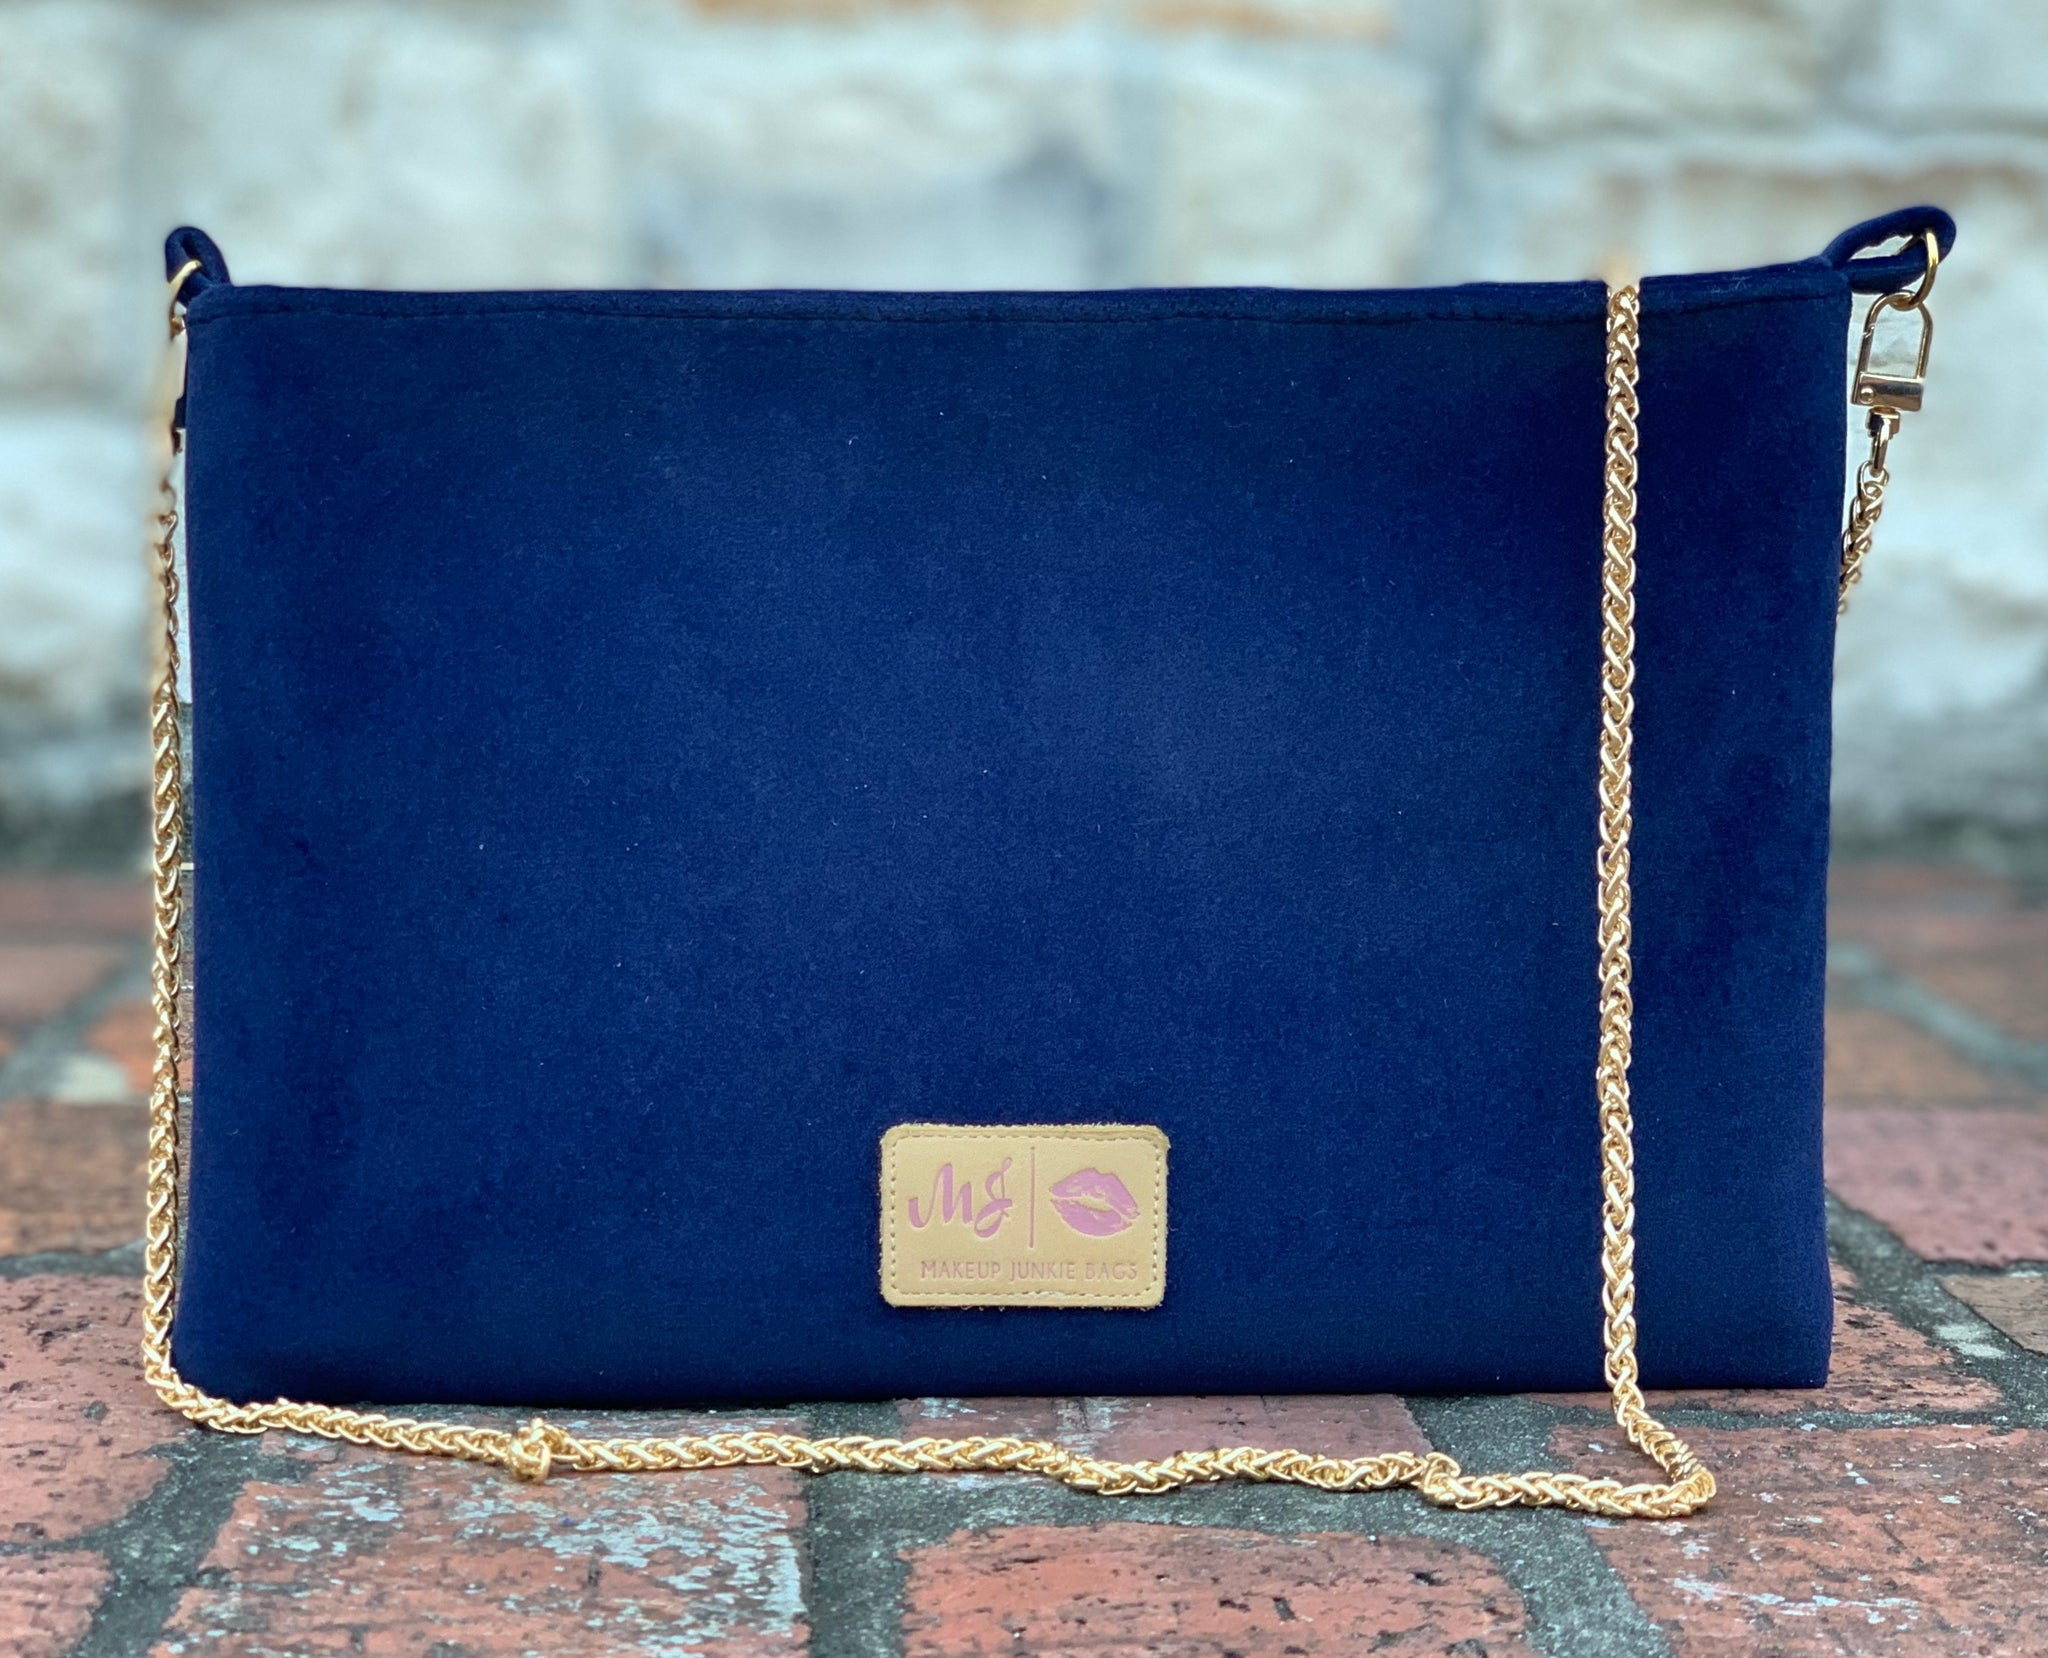 The Blue Cross Body